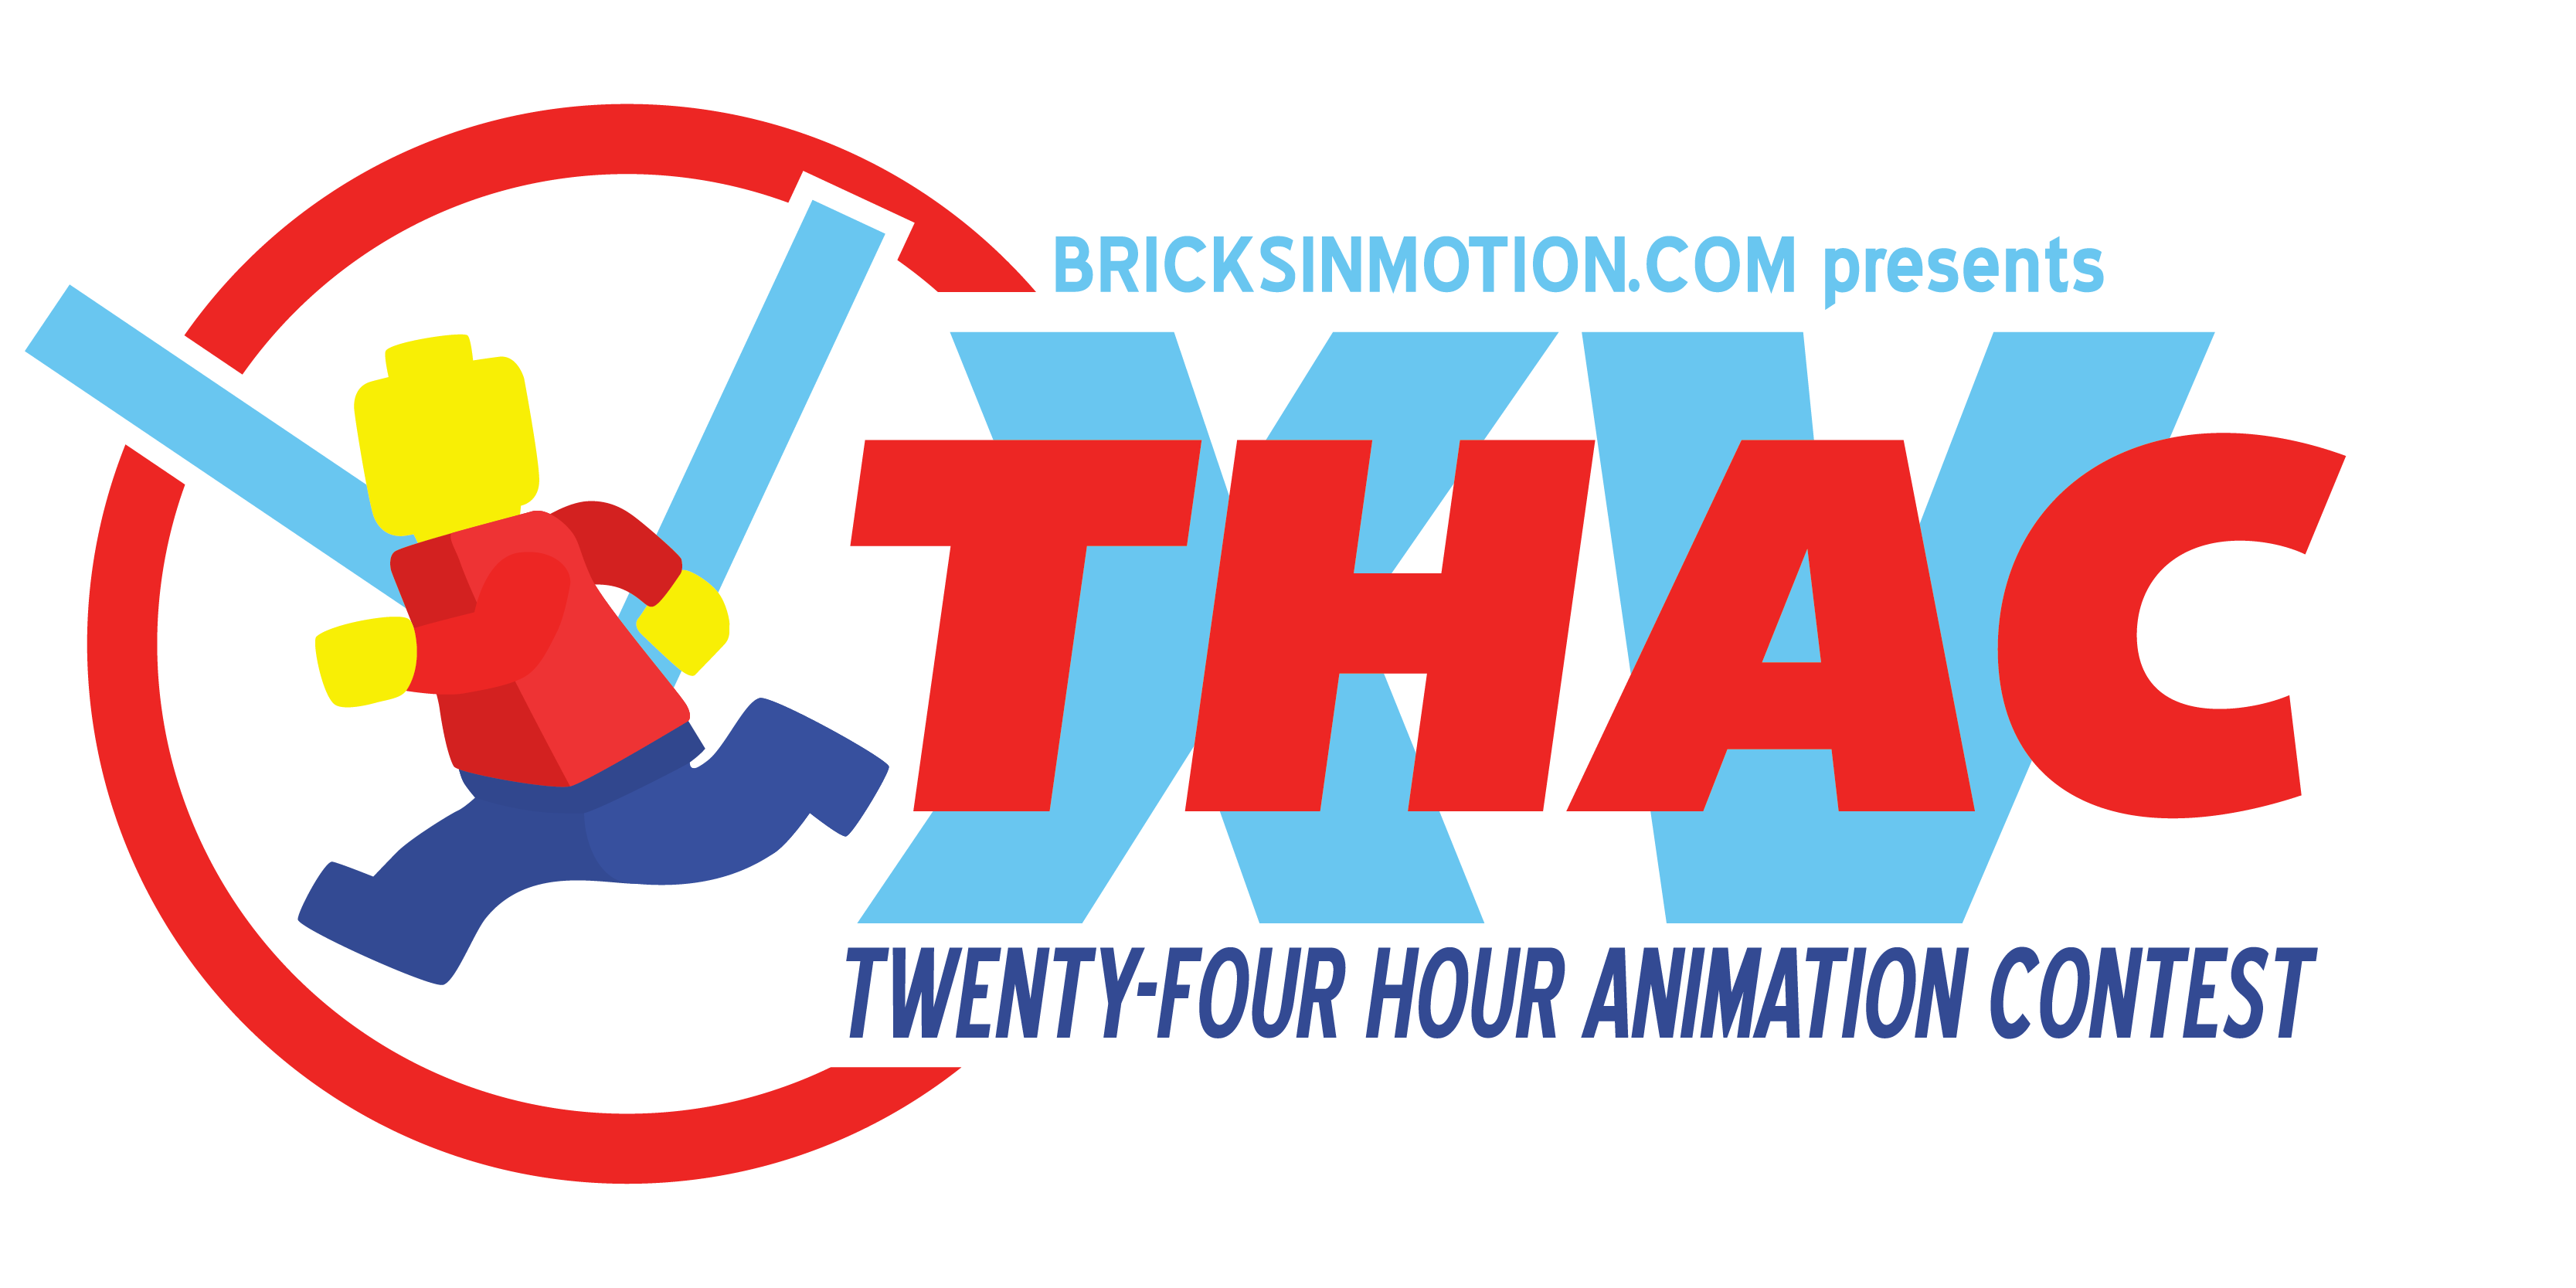 Twenty four Hour Animation Contest Brickfilms Wiki